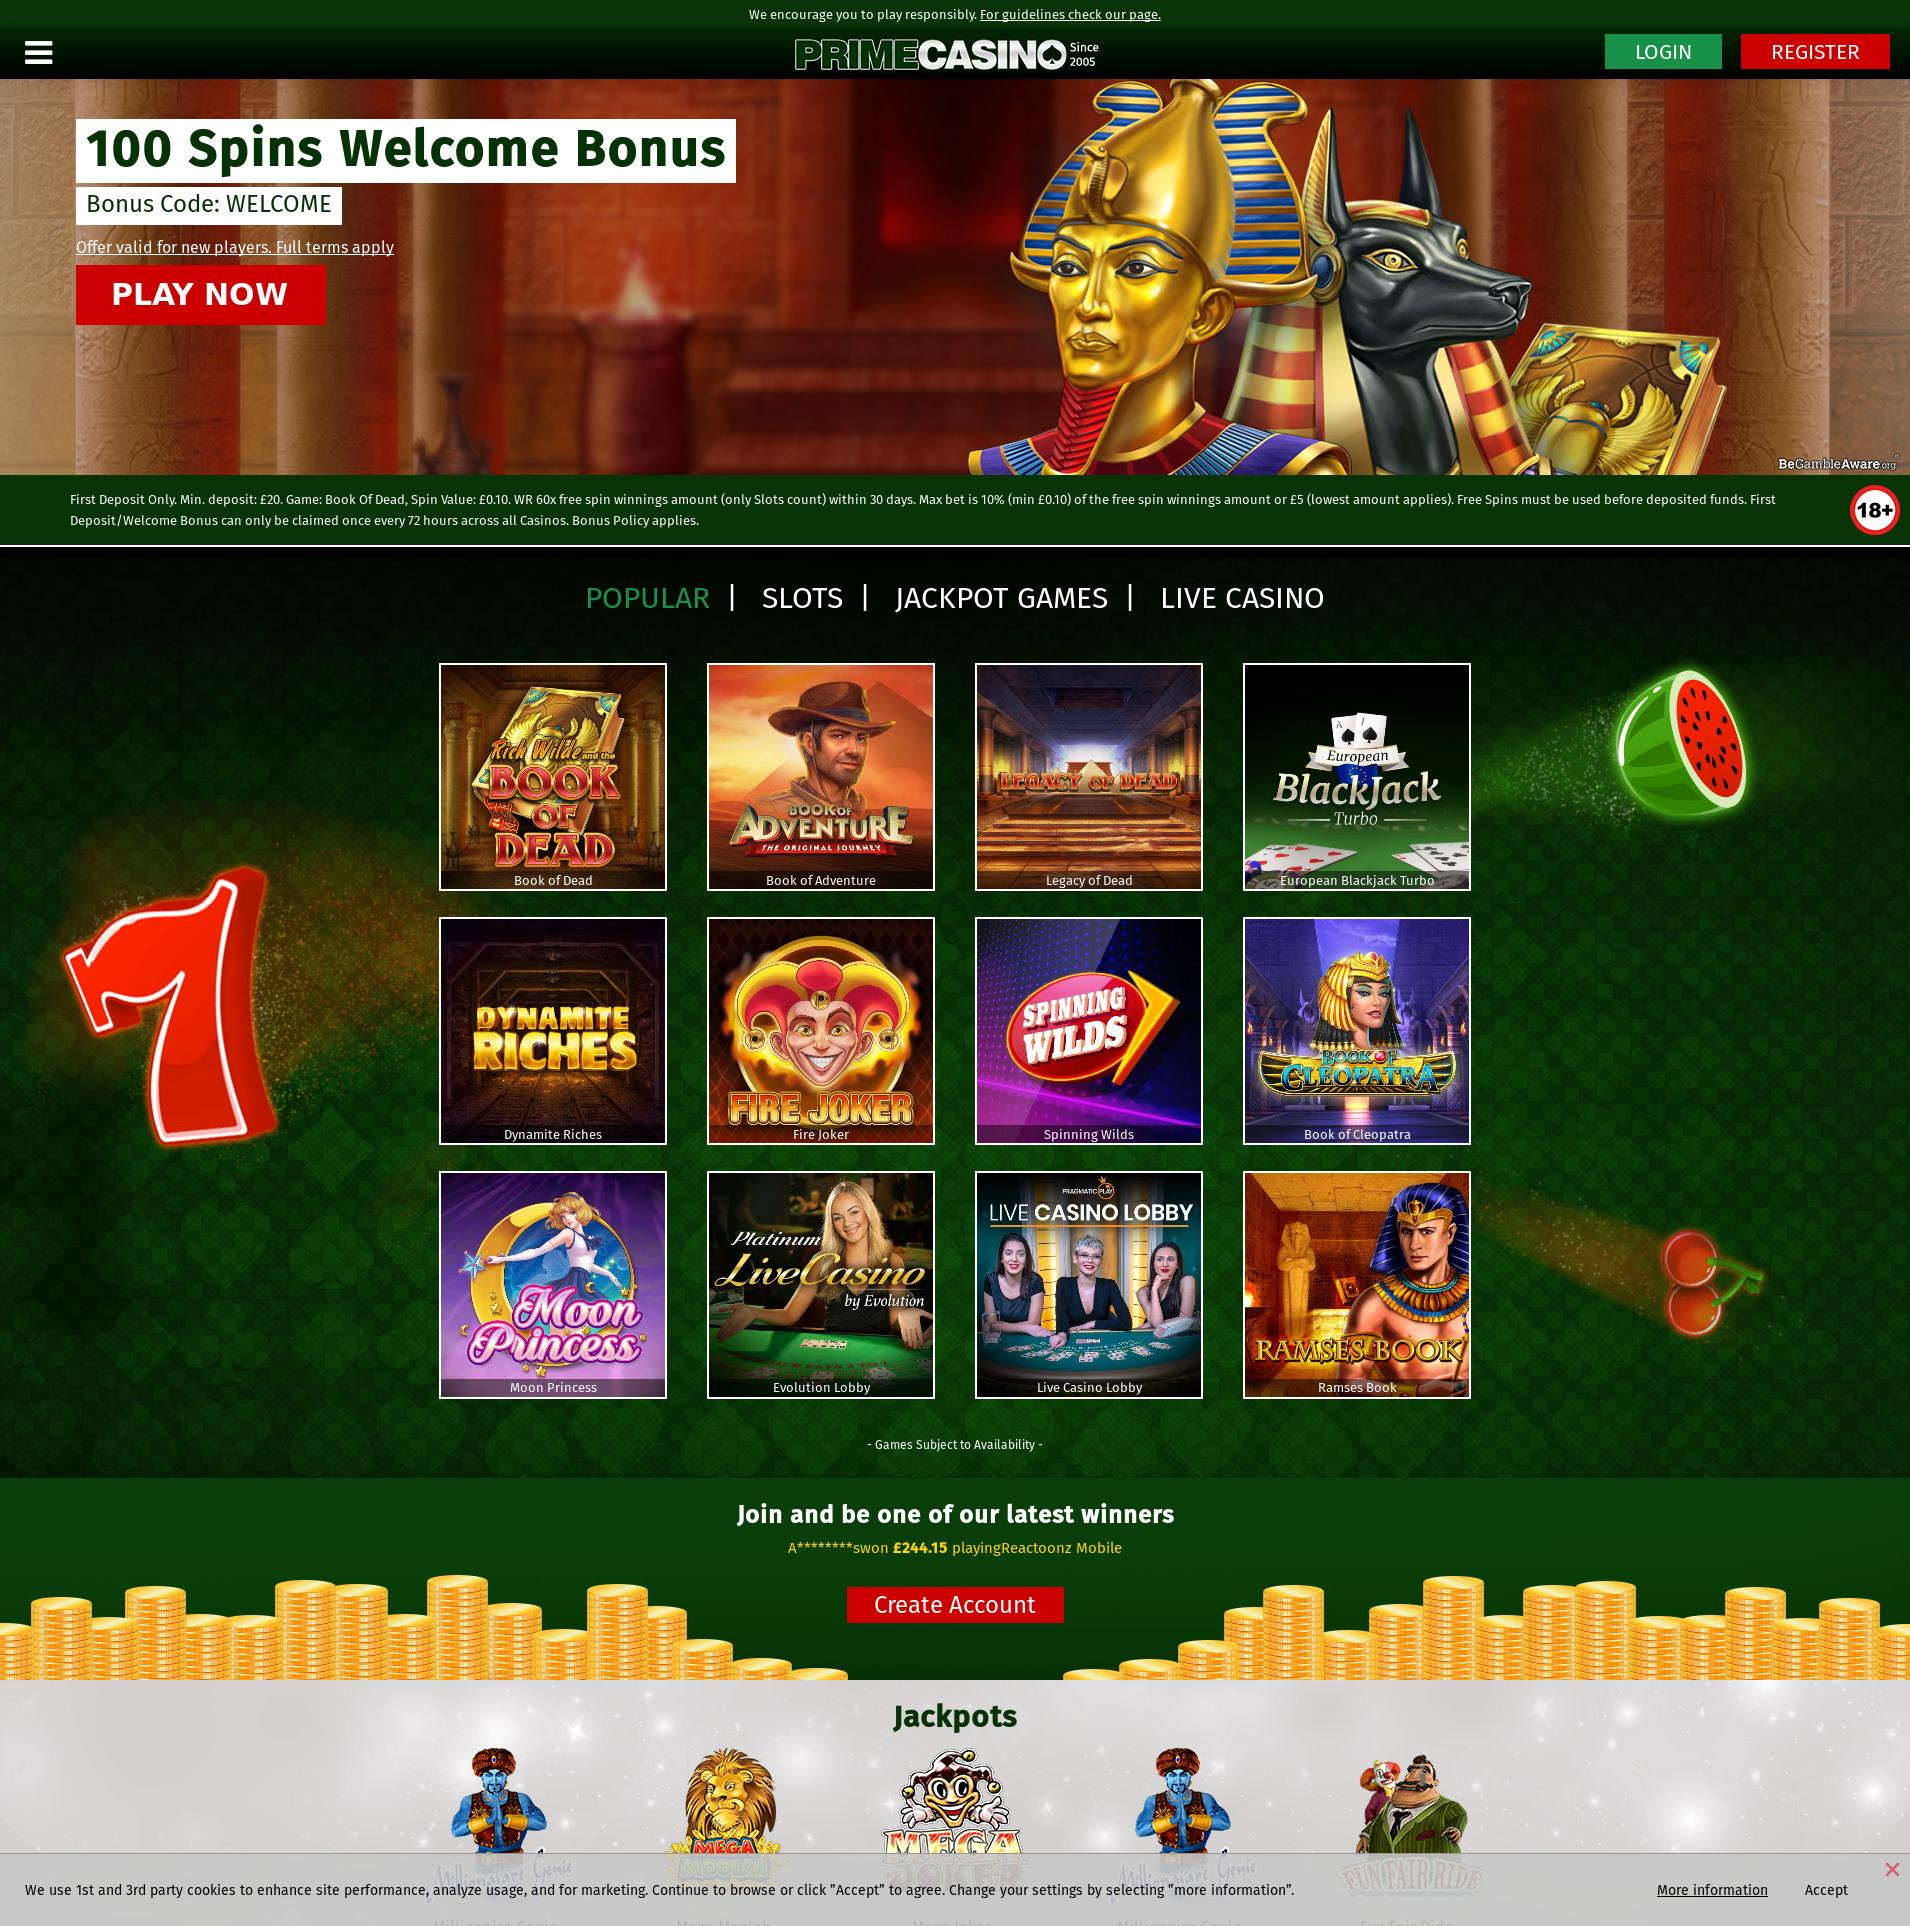 Casino screen Lobby 2020-06-04 for United Kingdom